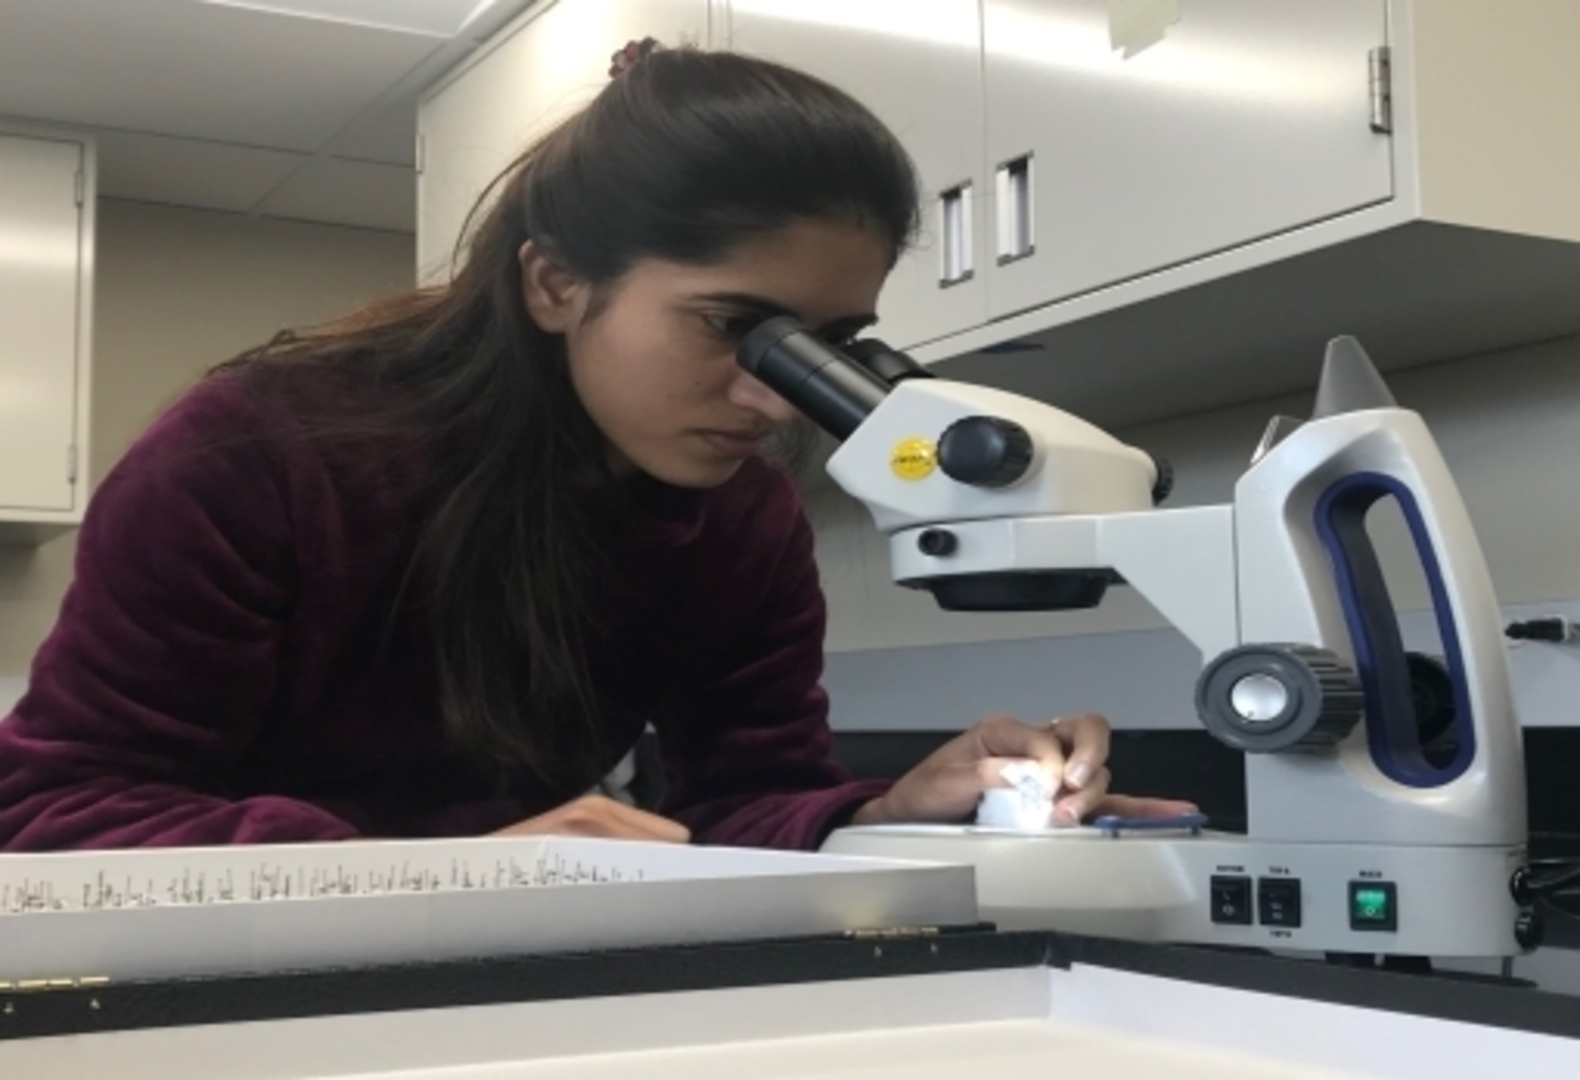 Student looking intro microscope